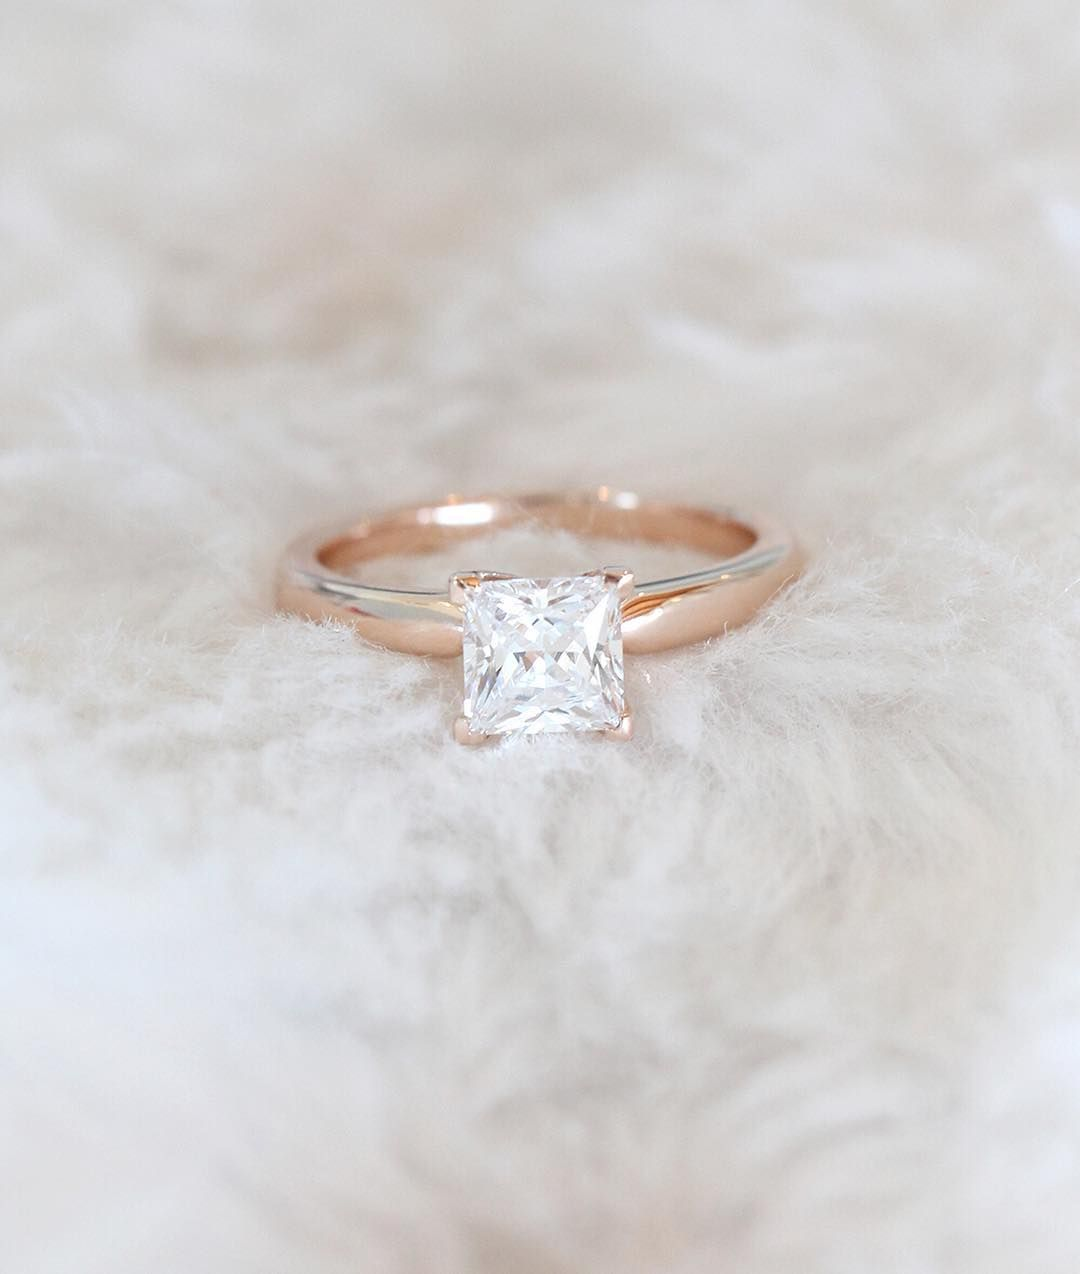 This 14k Rose Gold Princess Cut Engagement Ring Looks Stunning On All Skin Tones: Wedding Rings In Skin At Websimilar.org